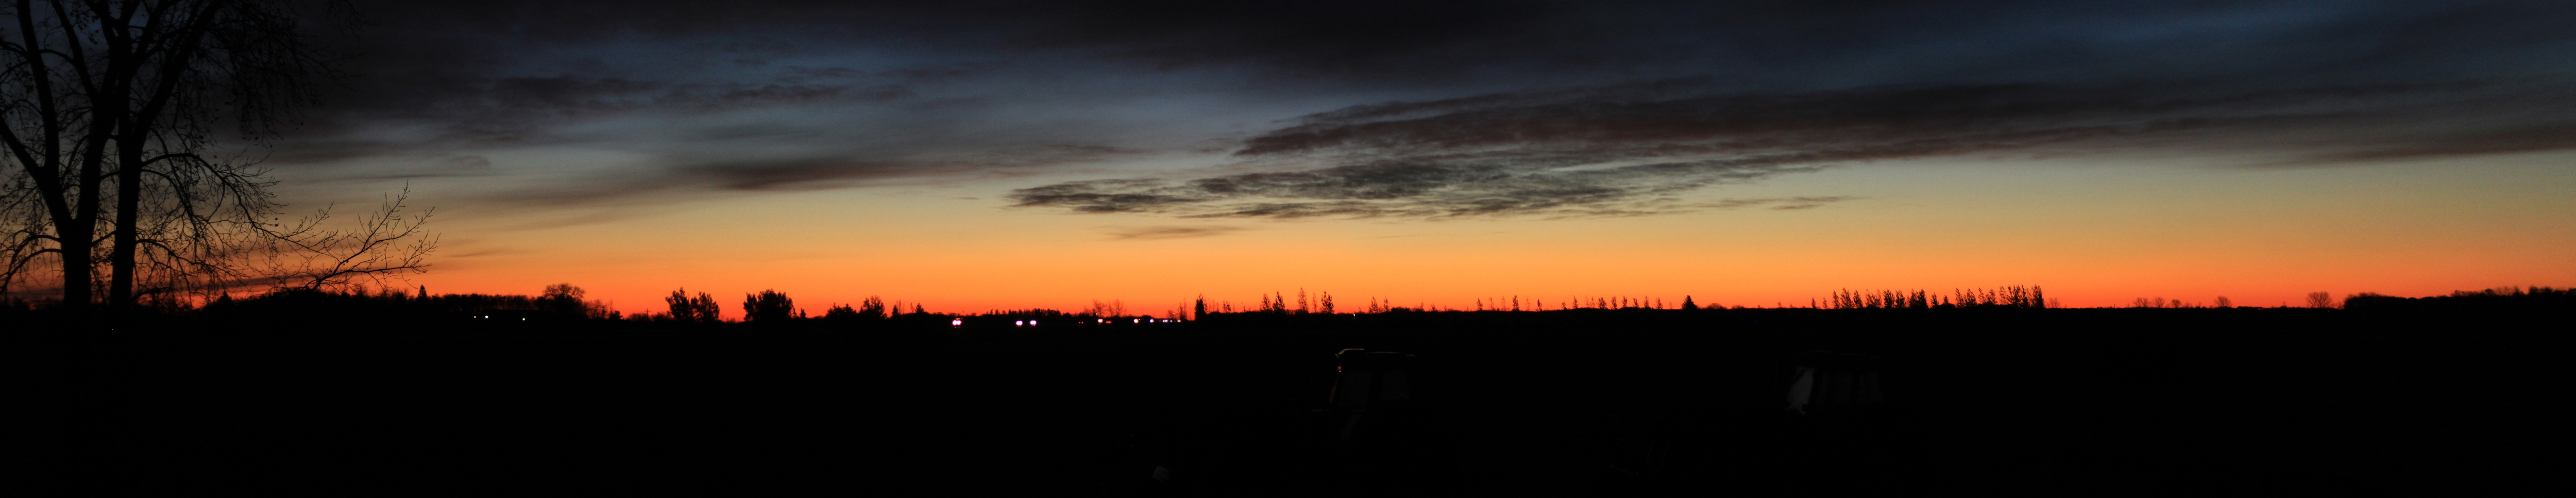 Sunrise at the Farm (panorama)